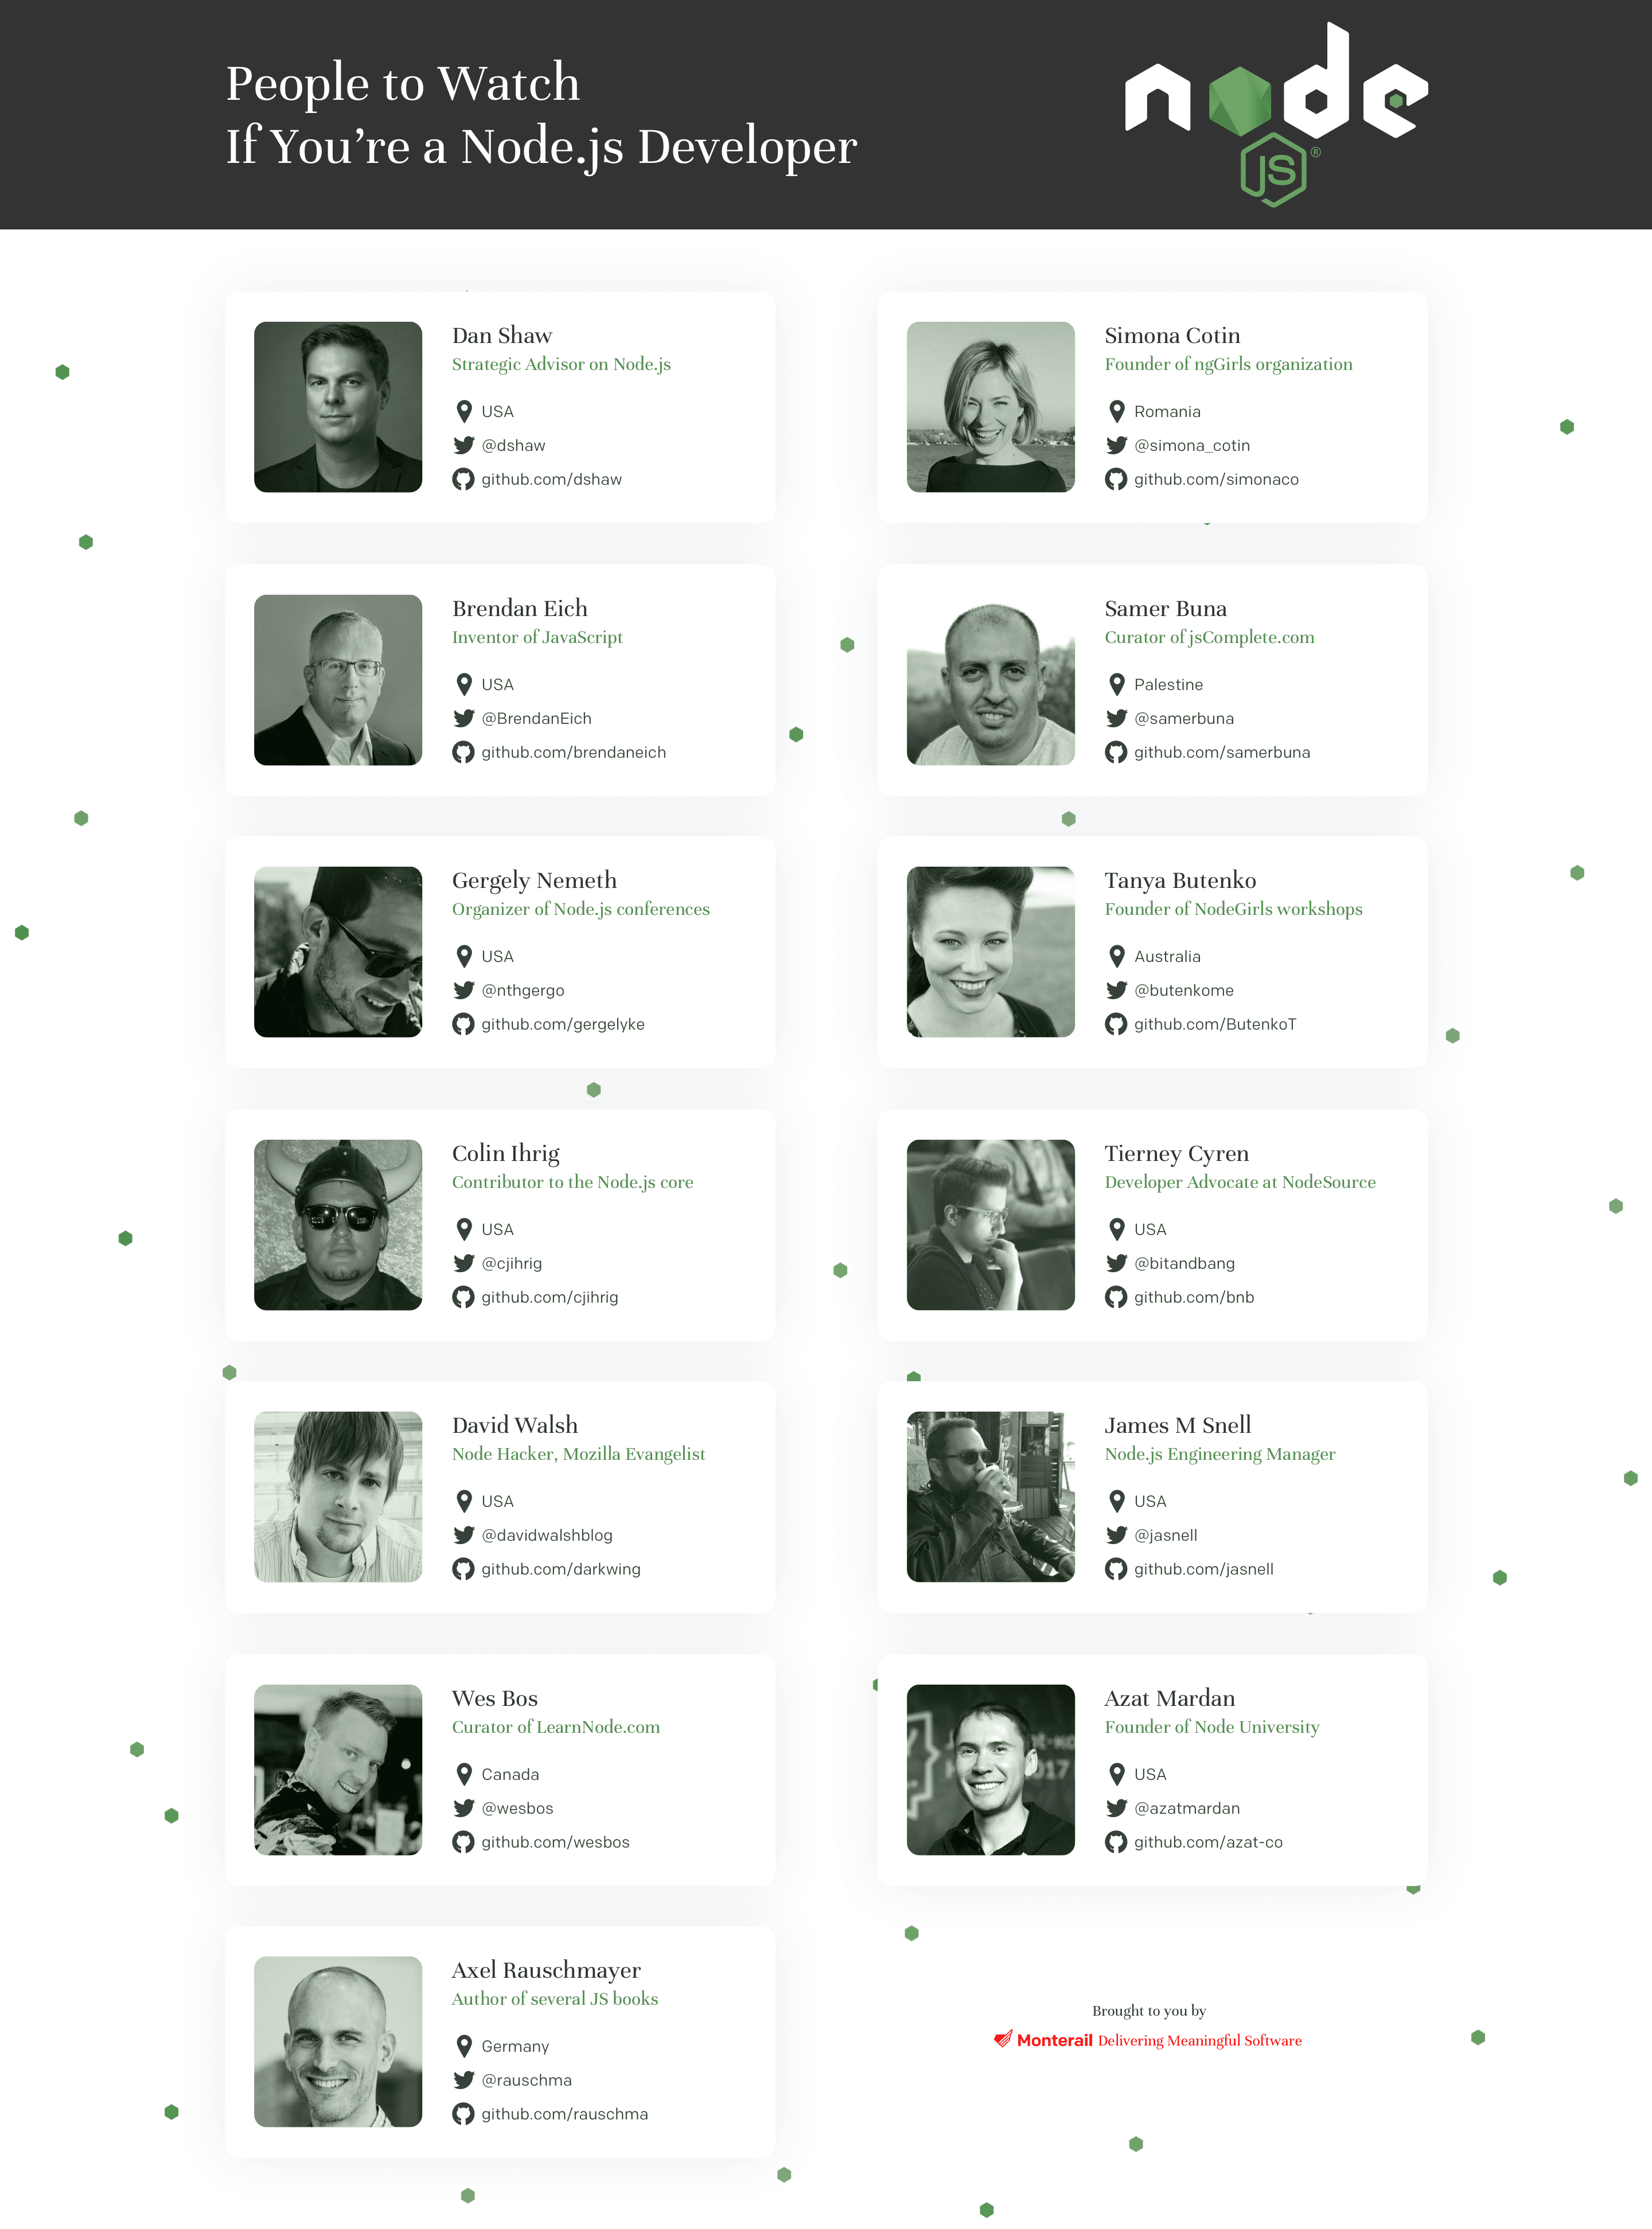 People To Watch If You're a Node.js Developer